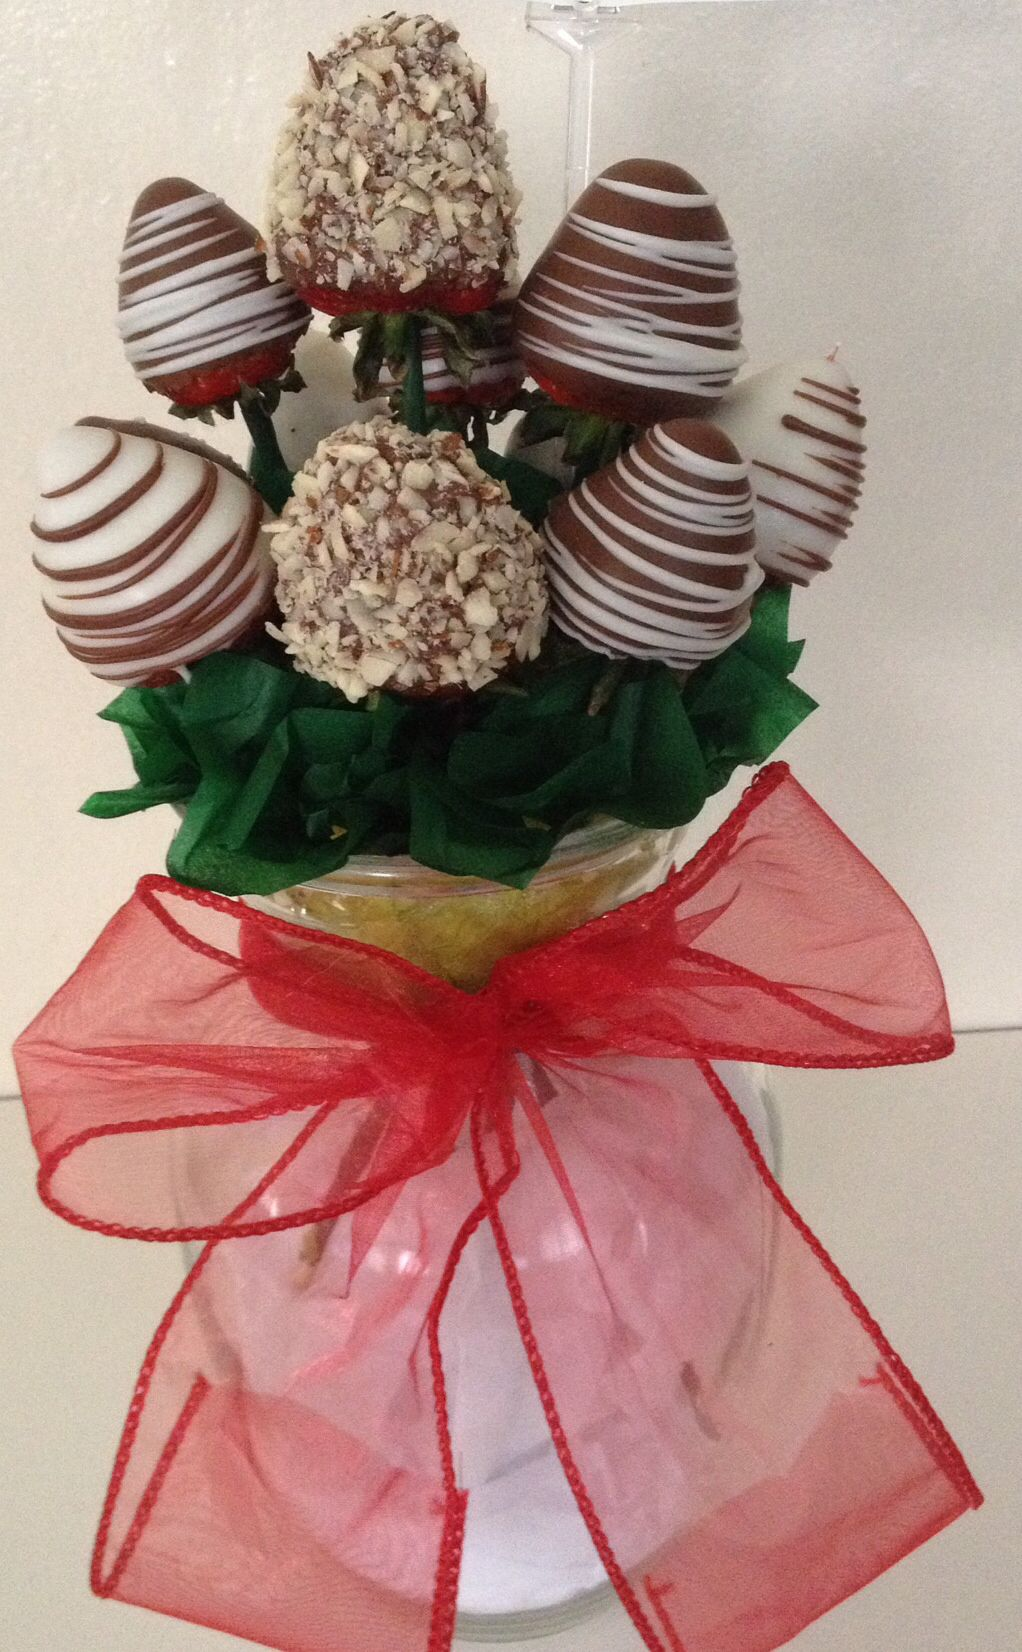 Chocolate covered strawberry bouquet